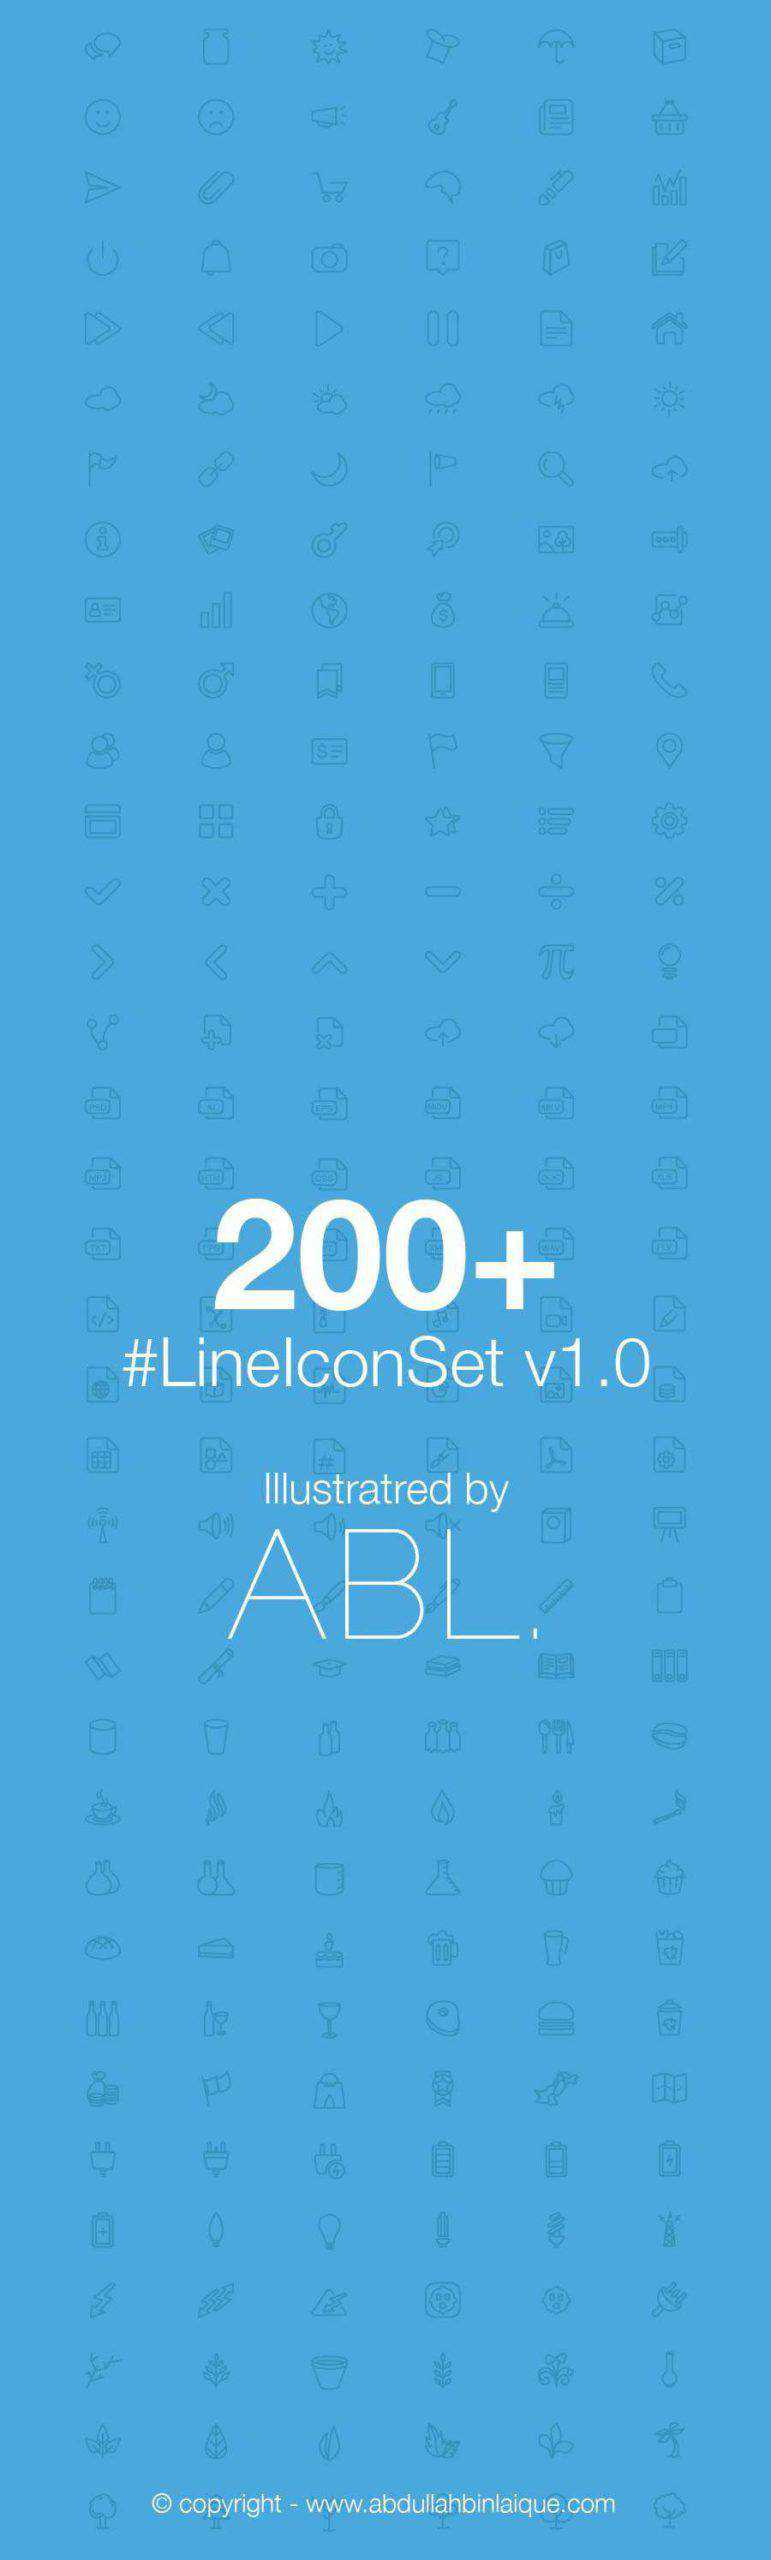 Line Icon Set free icons 200 thin line-styled